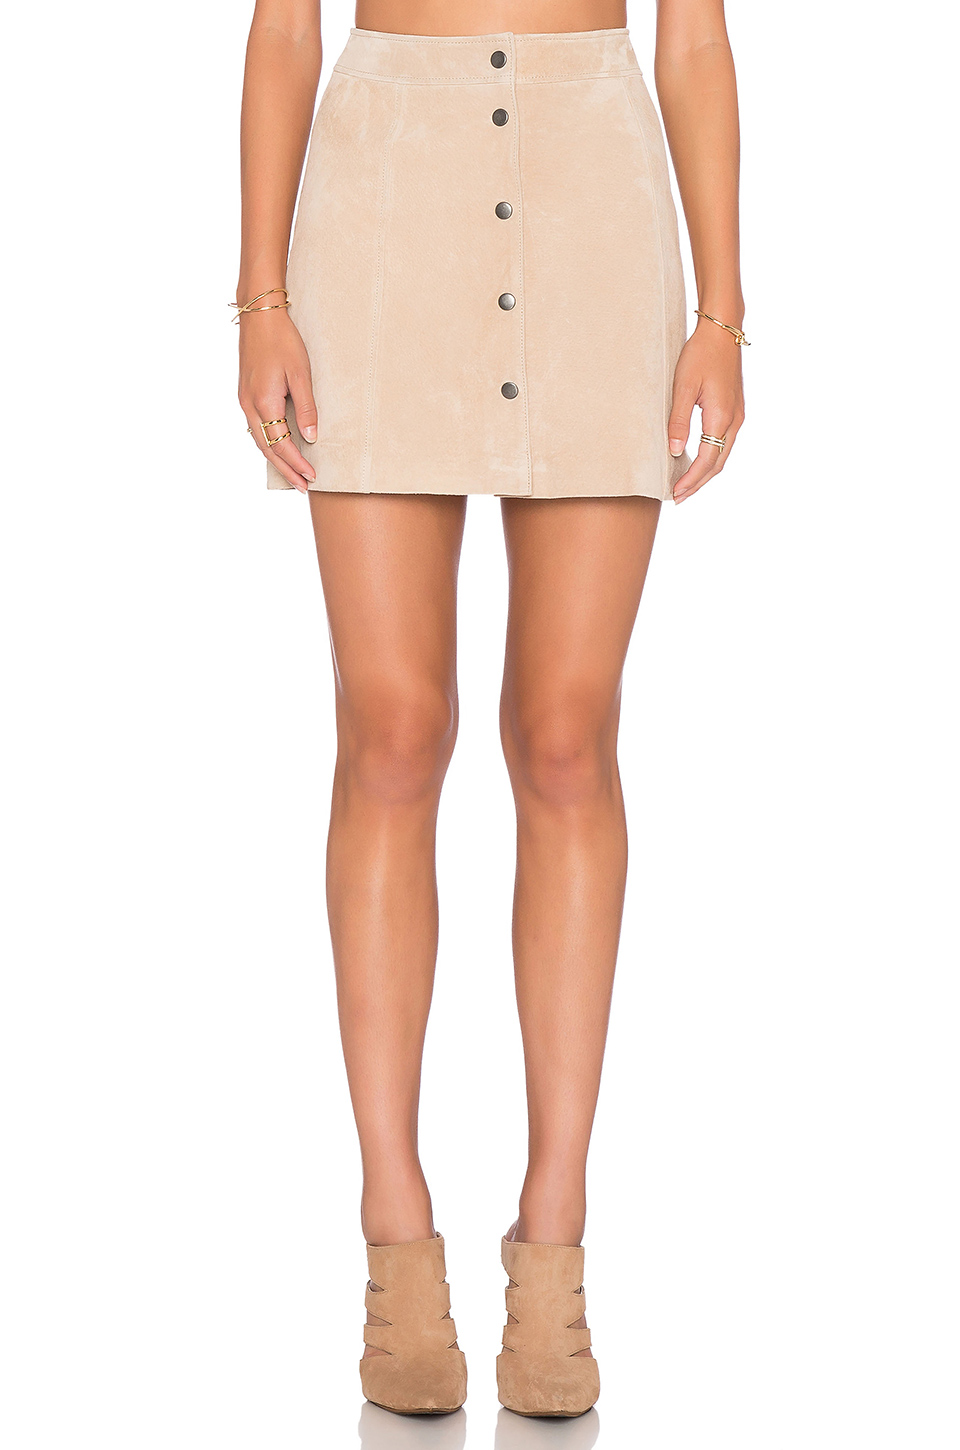 Bardot Blondie Suede Skirt, $150